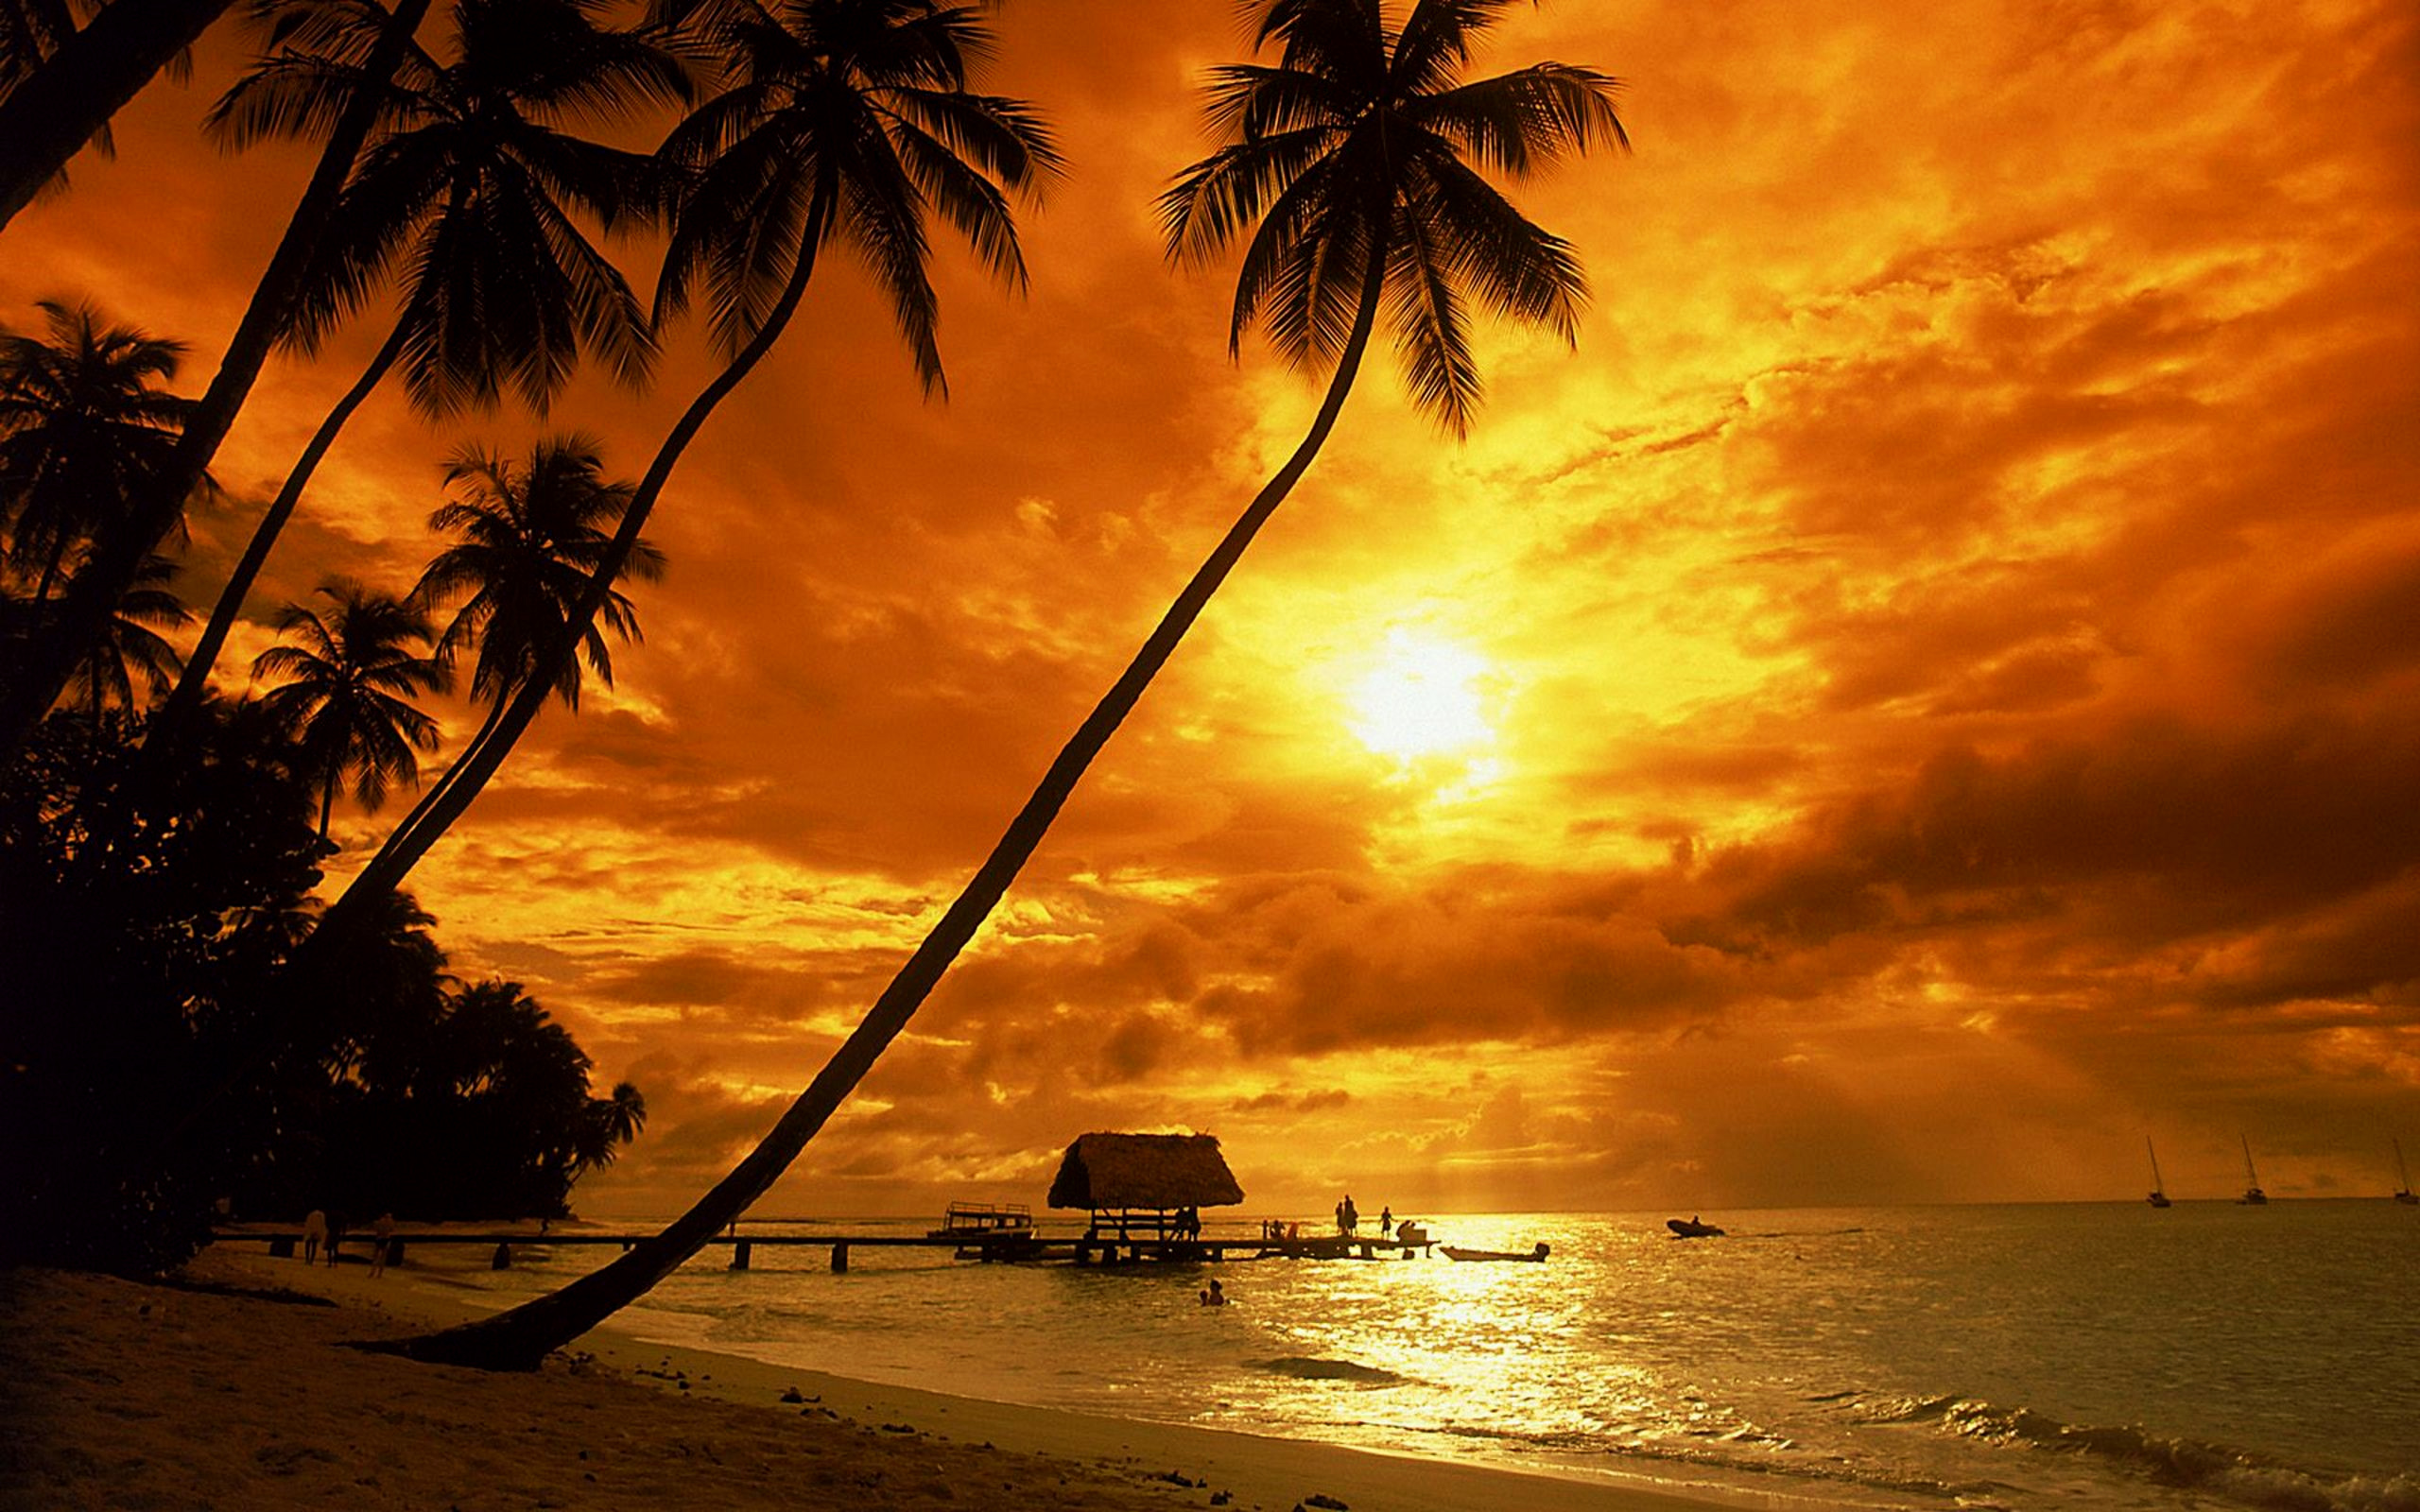 Hd Tropical Island Beach Paradise Wallpapers And Backgrounds: [39+] Tropical Beach Sunset Wallpaper Desktop On